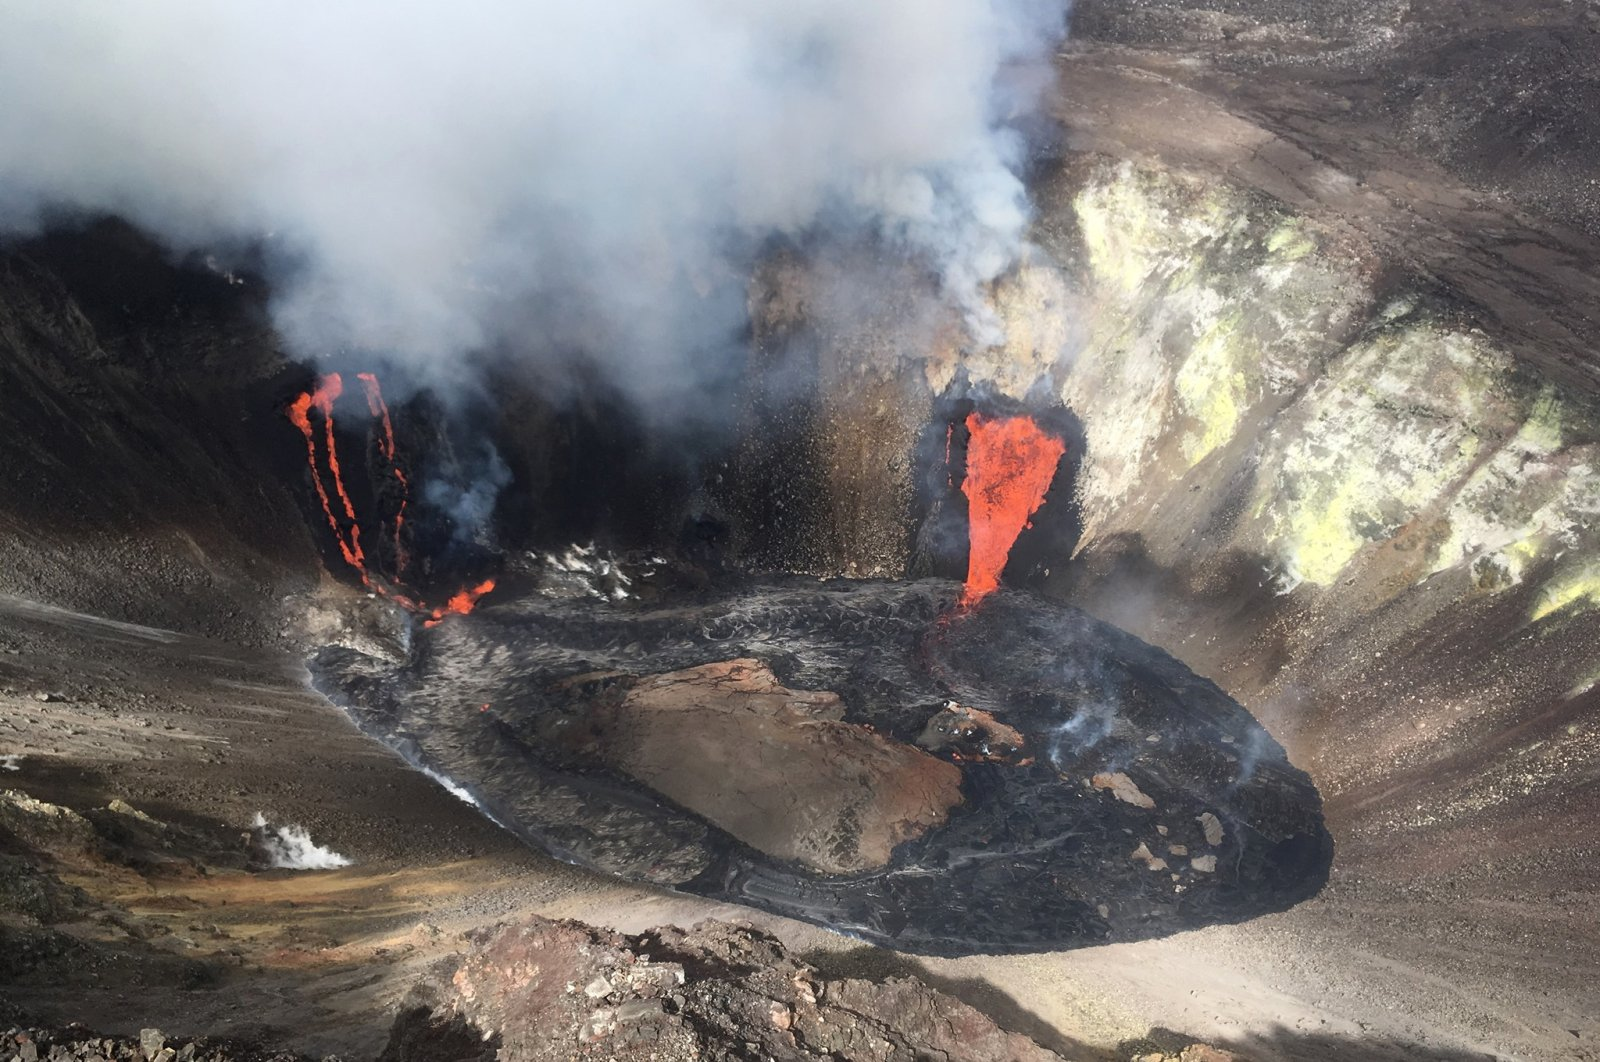 A plume rises near active fissures in the crater of Hawaii's Kilauea volcano, U.S., Dec. 21, 2020. (AP Photo)